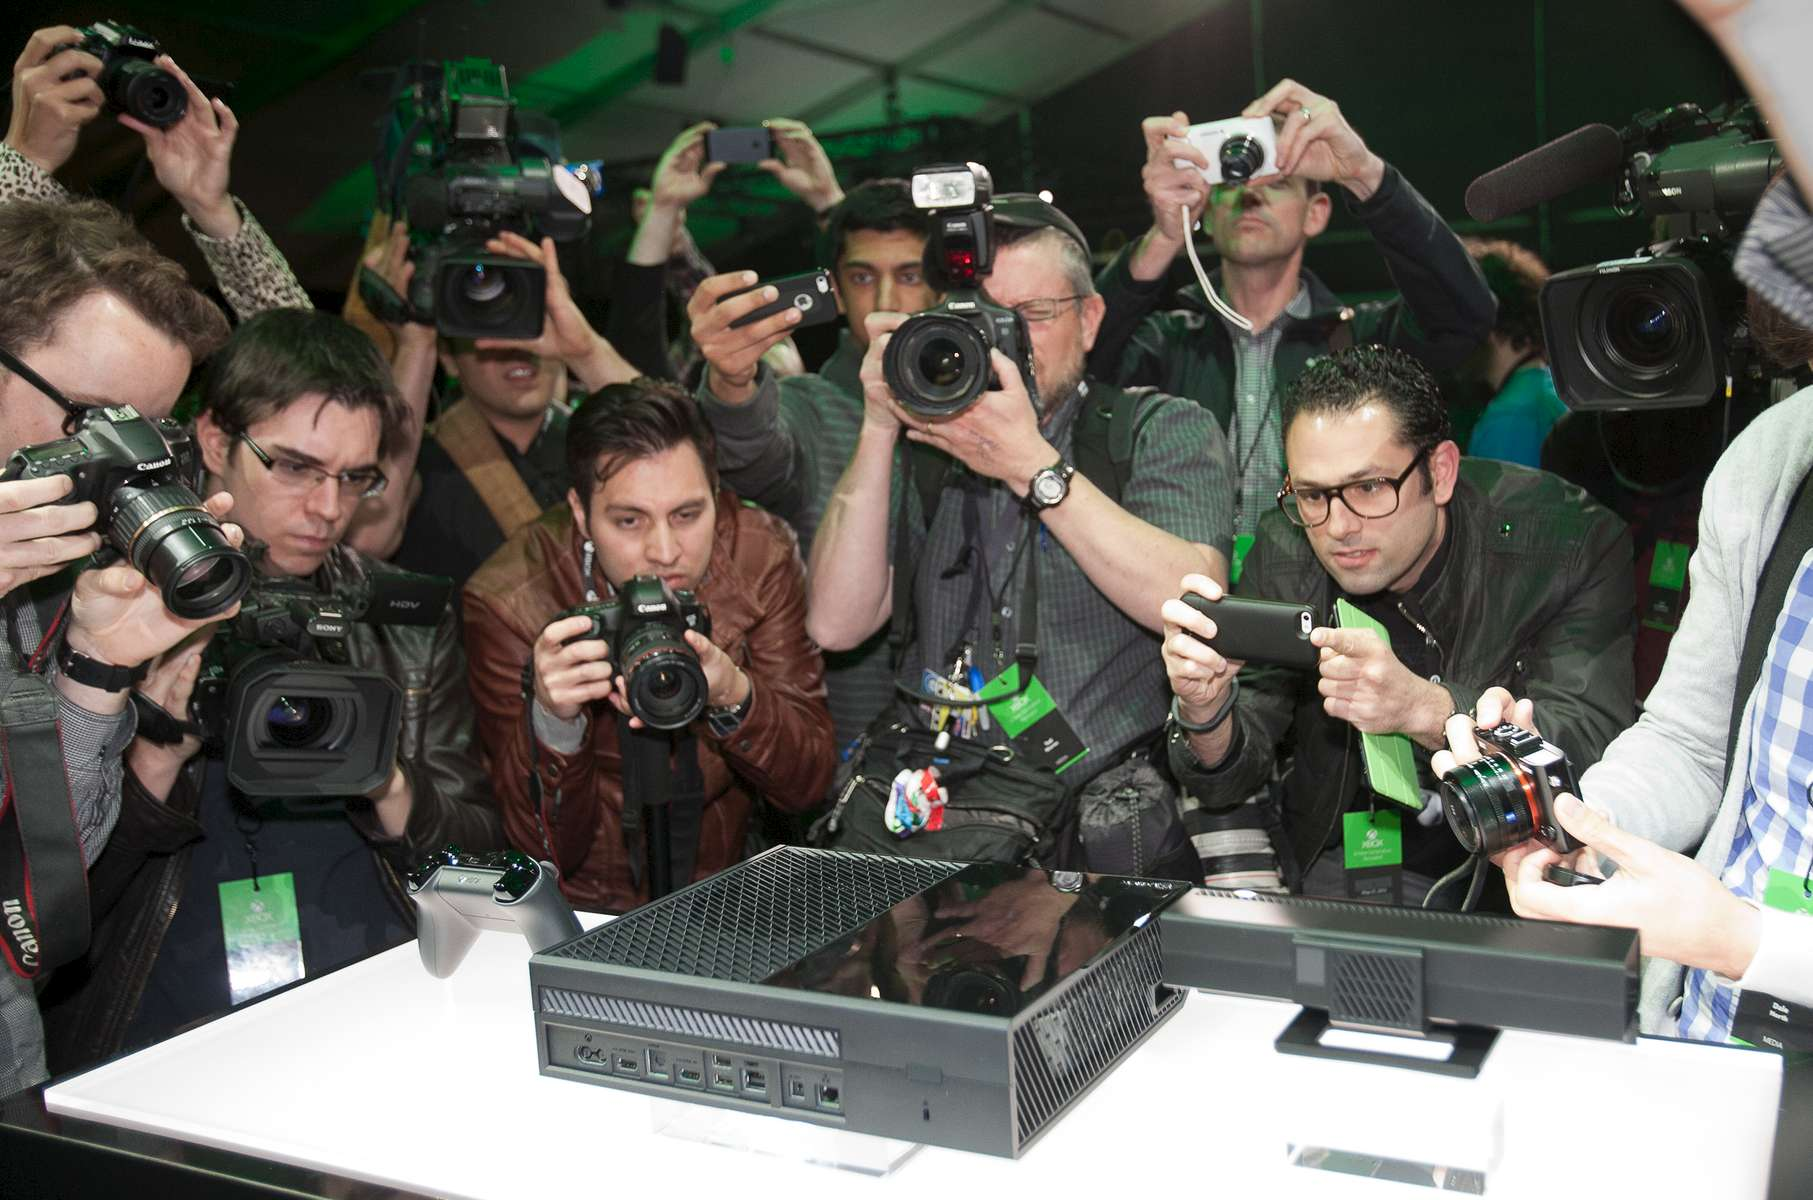 Photographers crowd around to get pictures of the new Xbox after its unveiling by Microsoft.